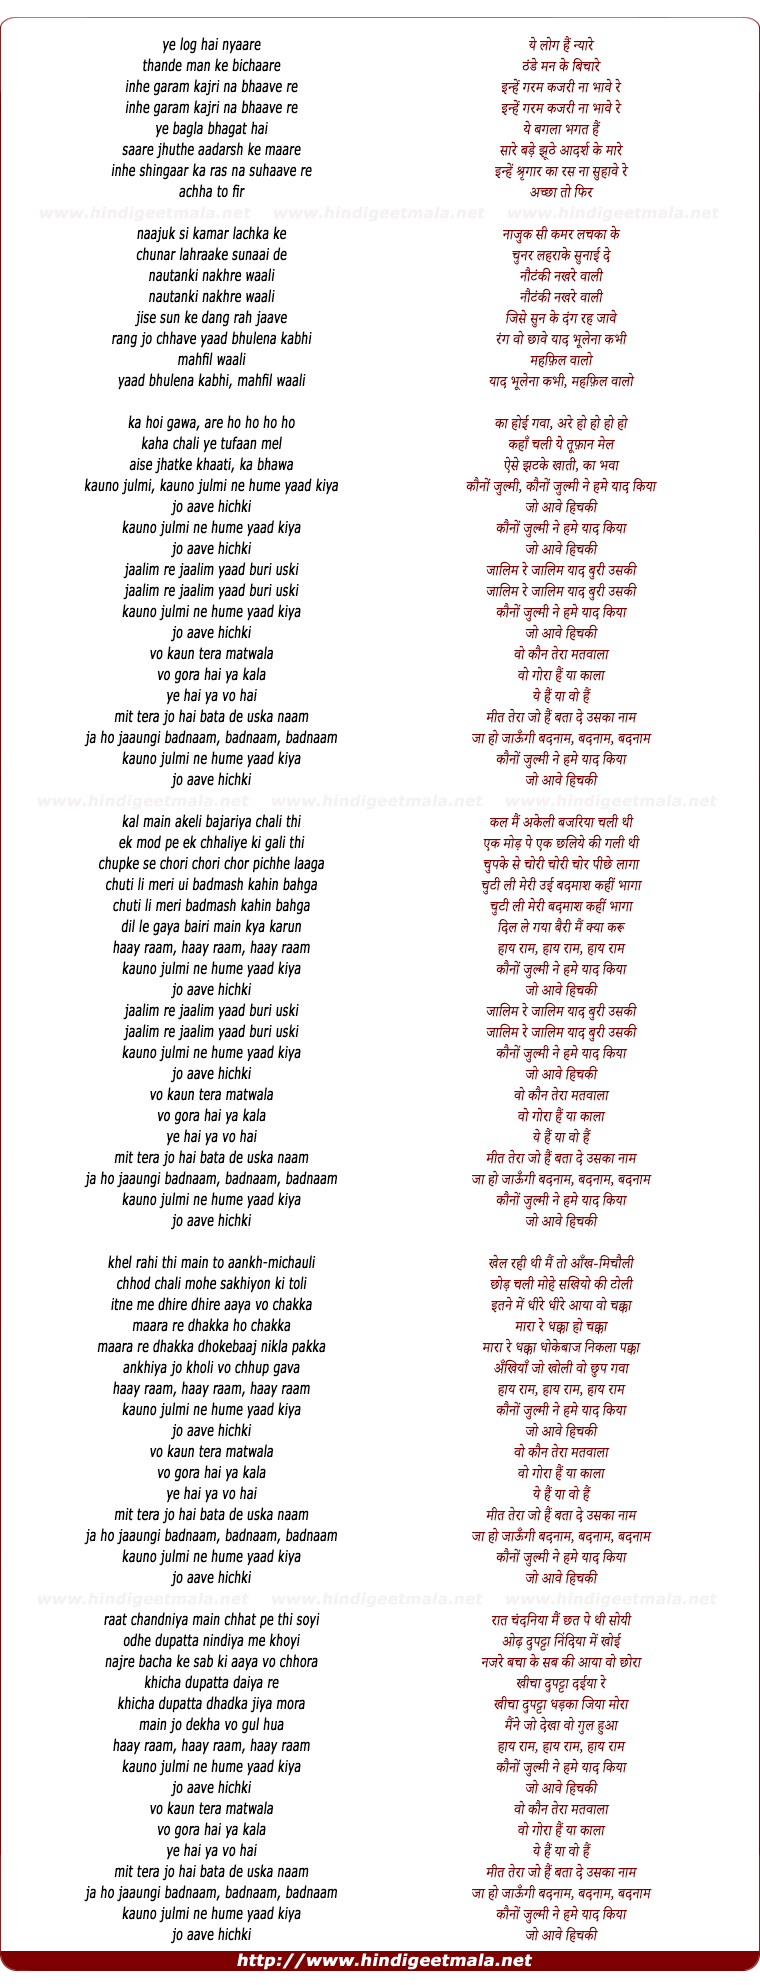 lyrics of song Ye Log Hai Nyare